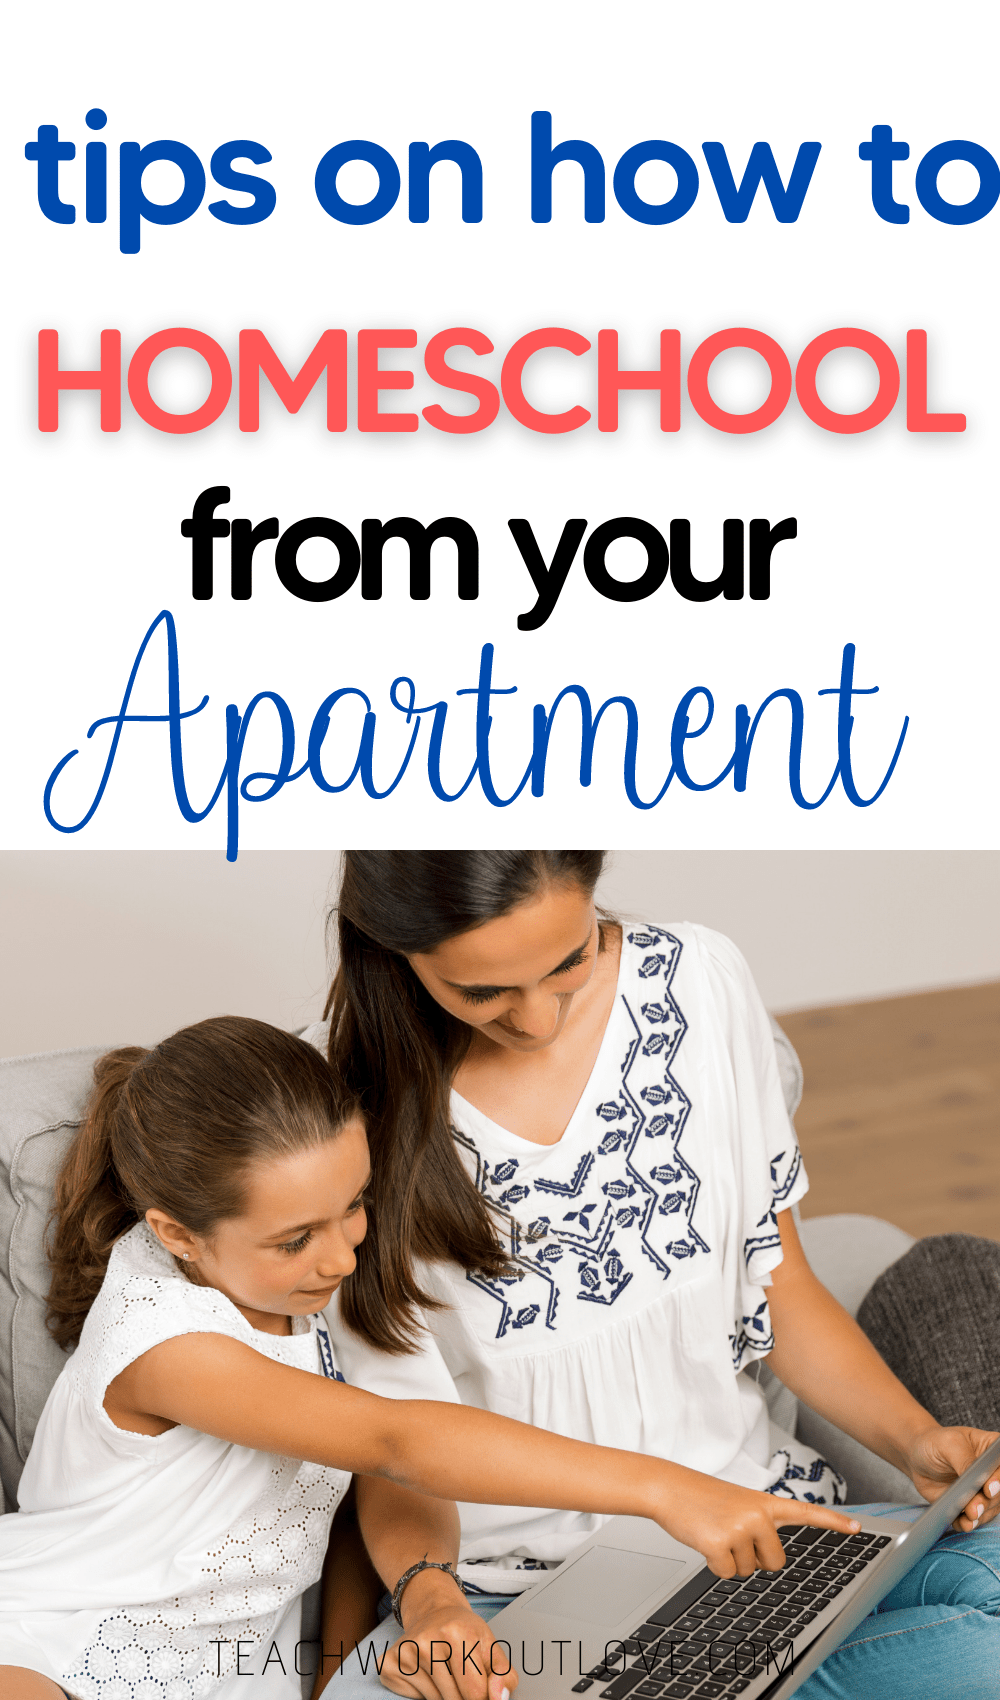 We have compiled a couple of tips and tricks to help maximize your success how to homeschool from your apartment.